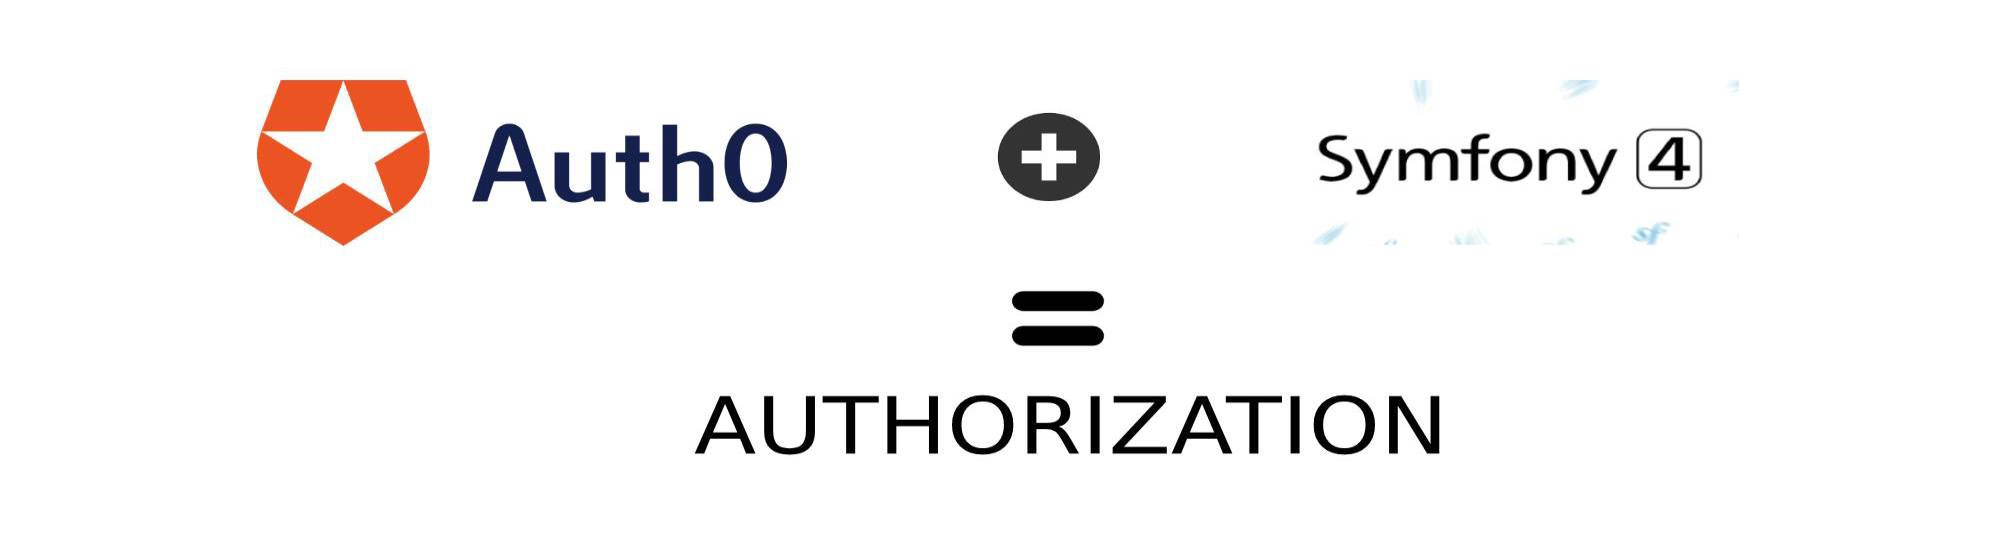 How to Authorize Auth0 User In Symfony 4: A Step-by-Step Guide